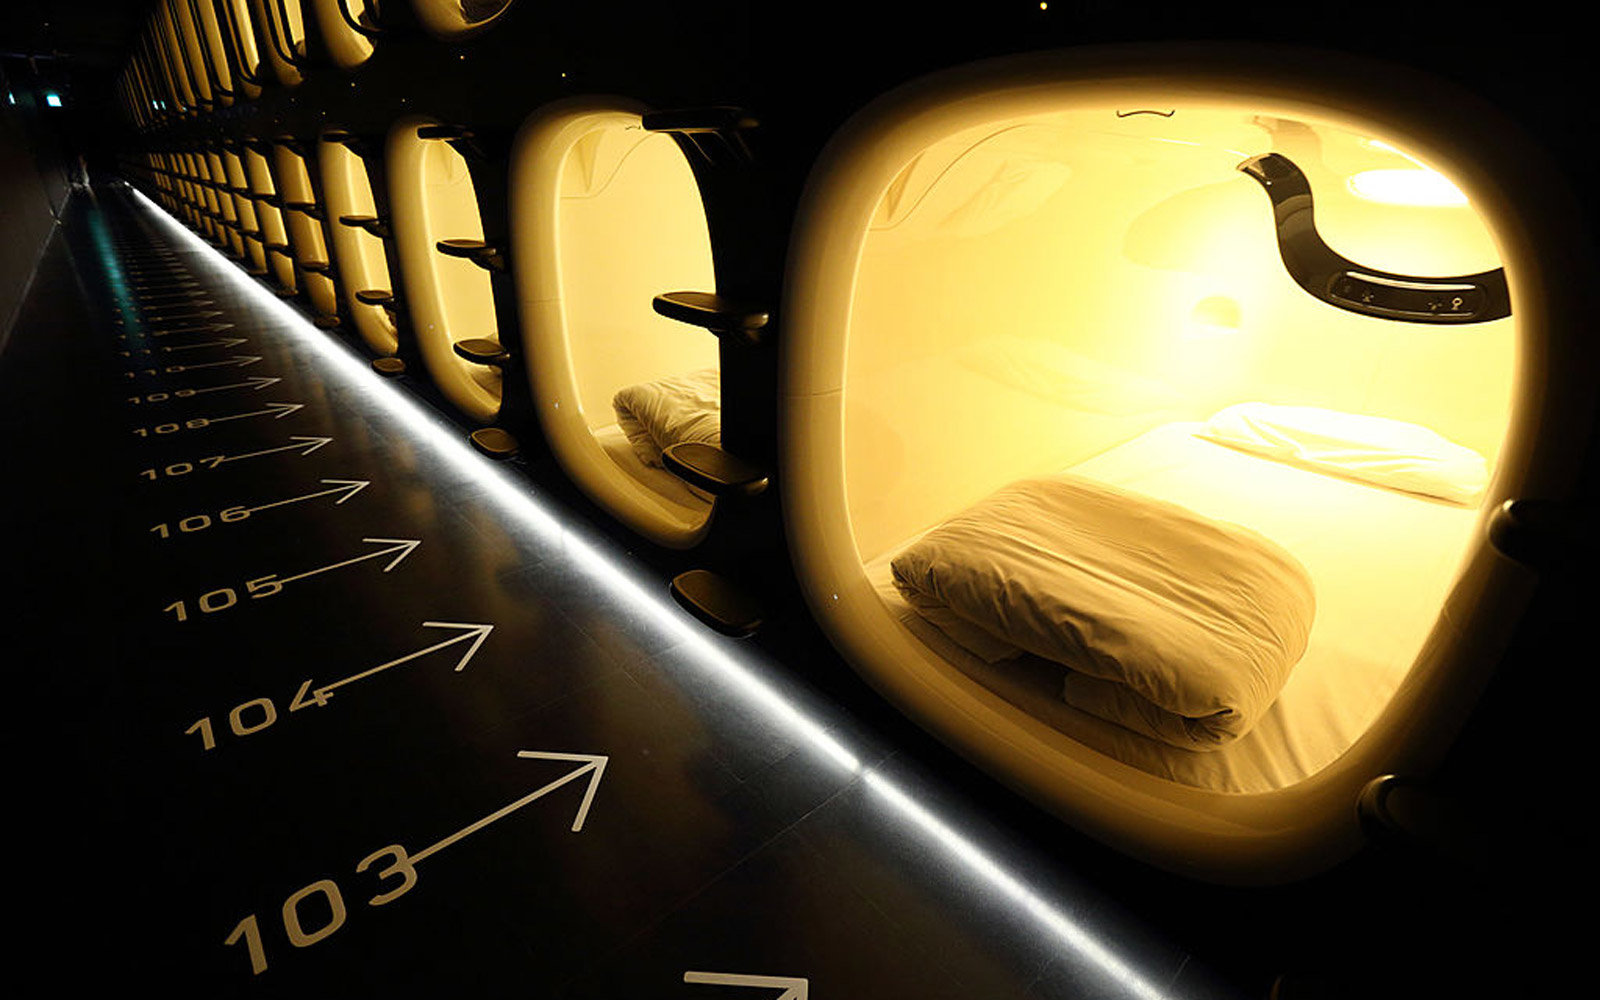 Capsule units stand in the Nine Hours Narita Airport capsule hotel, operated by nine hours Inc., at Narita Airport in Narita, Japan, on Thursday, July 31, 2014. The cheapest hotel in the Narita airport area was opened on July 20, offering a room which cos